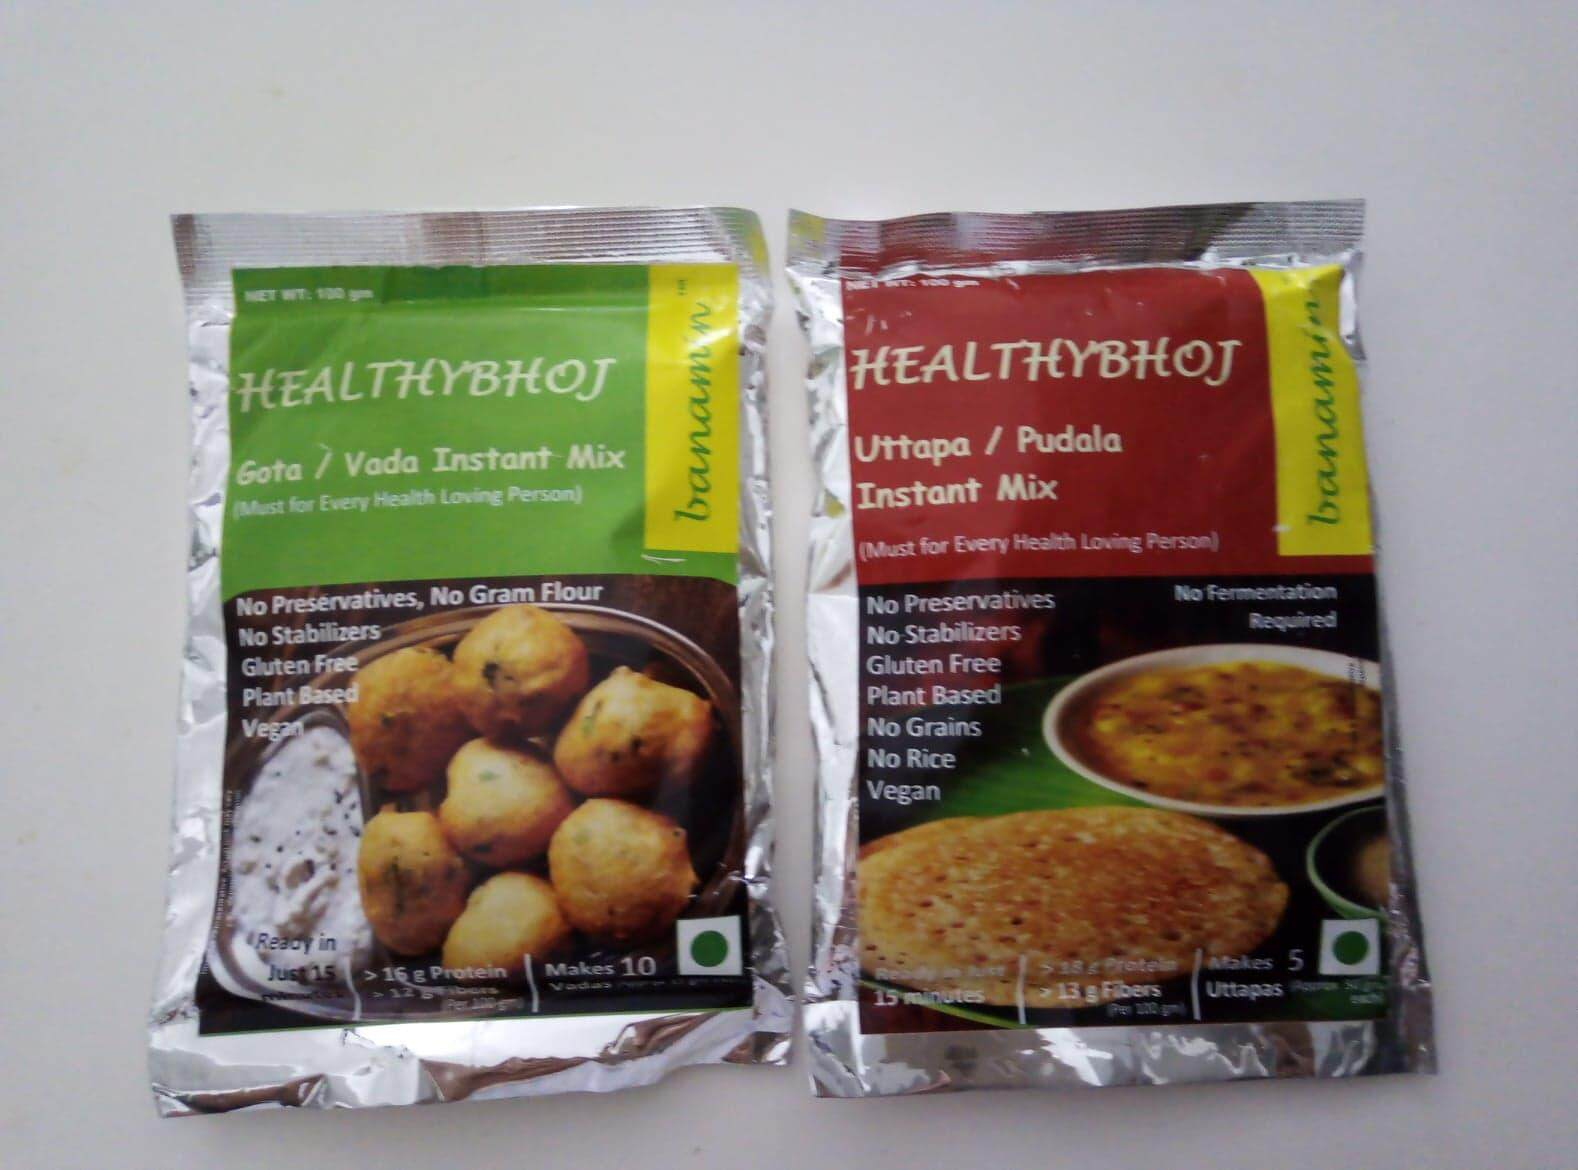 VEGAN GLUTEN FREE Vada / Vadai Instant Mix (100gm) AND Uttapa Instant Mix (NO RICE) (100gm) - HALAL CERTIFIED